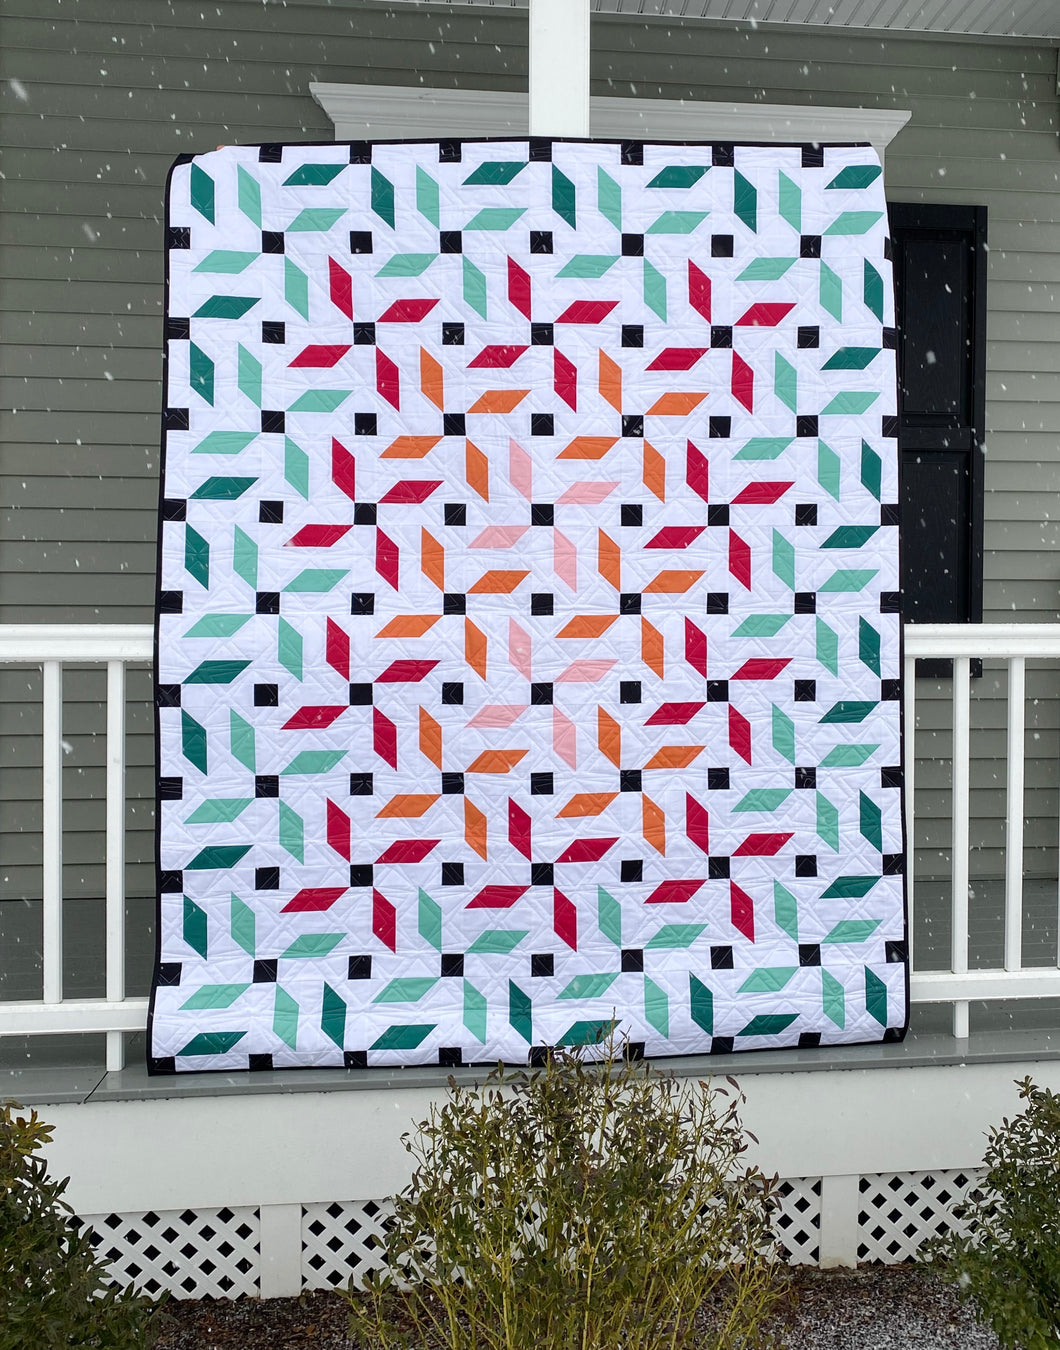 Propeller Quilt Kit Large Throw by Mandi Persell of Sewcial Stitch